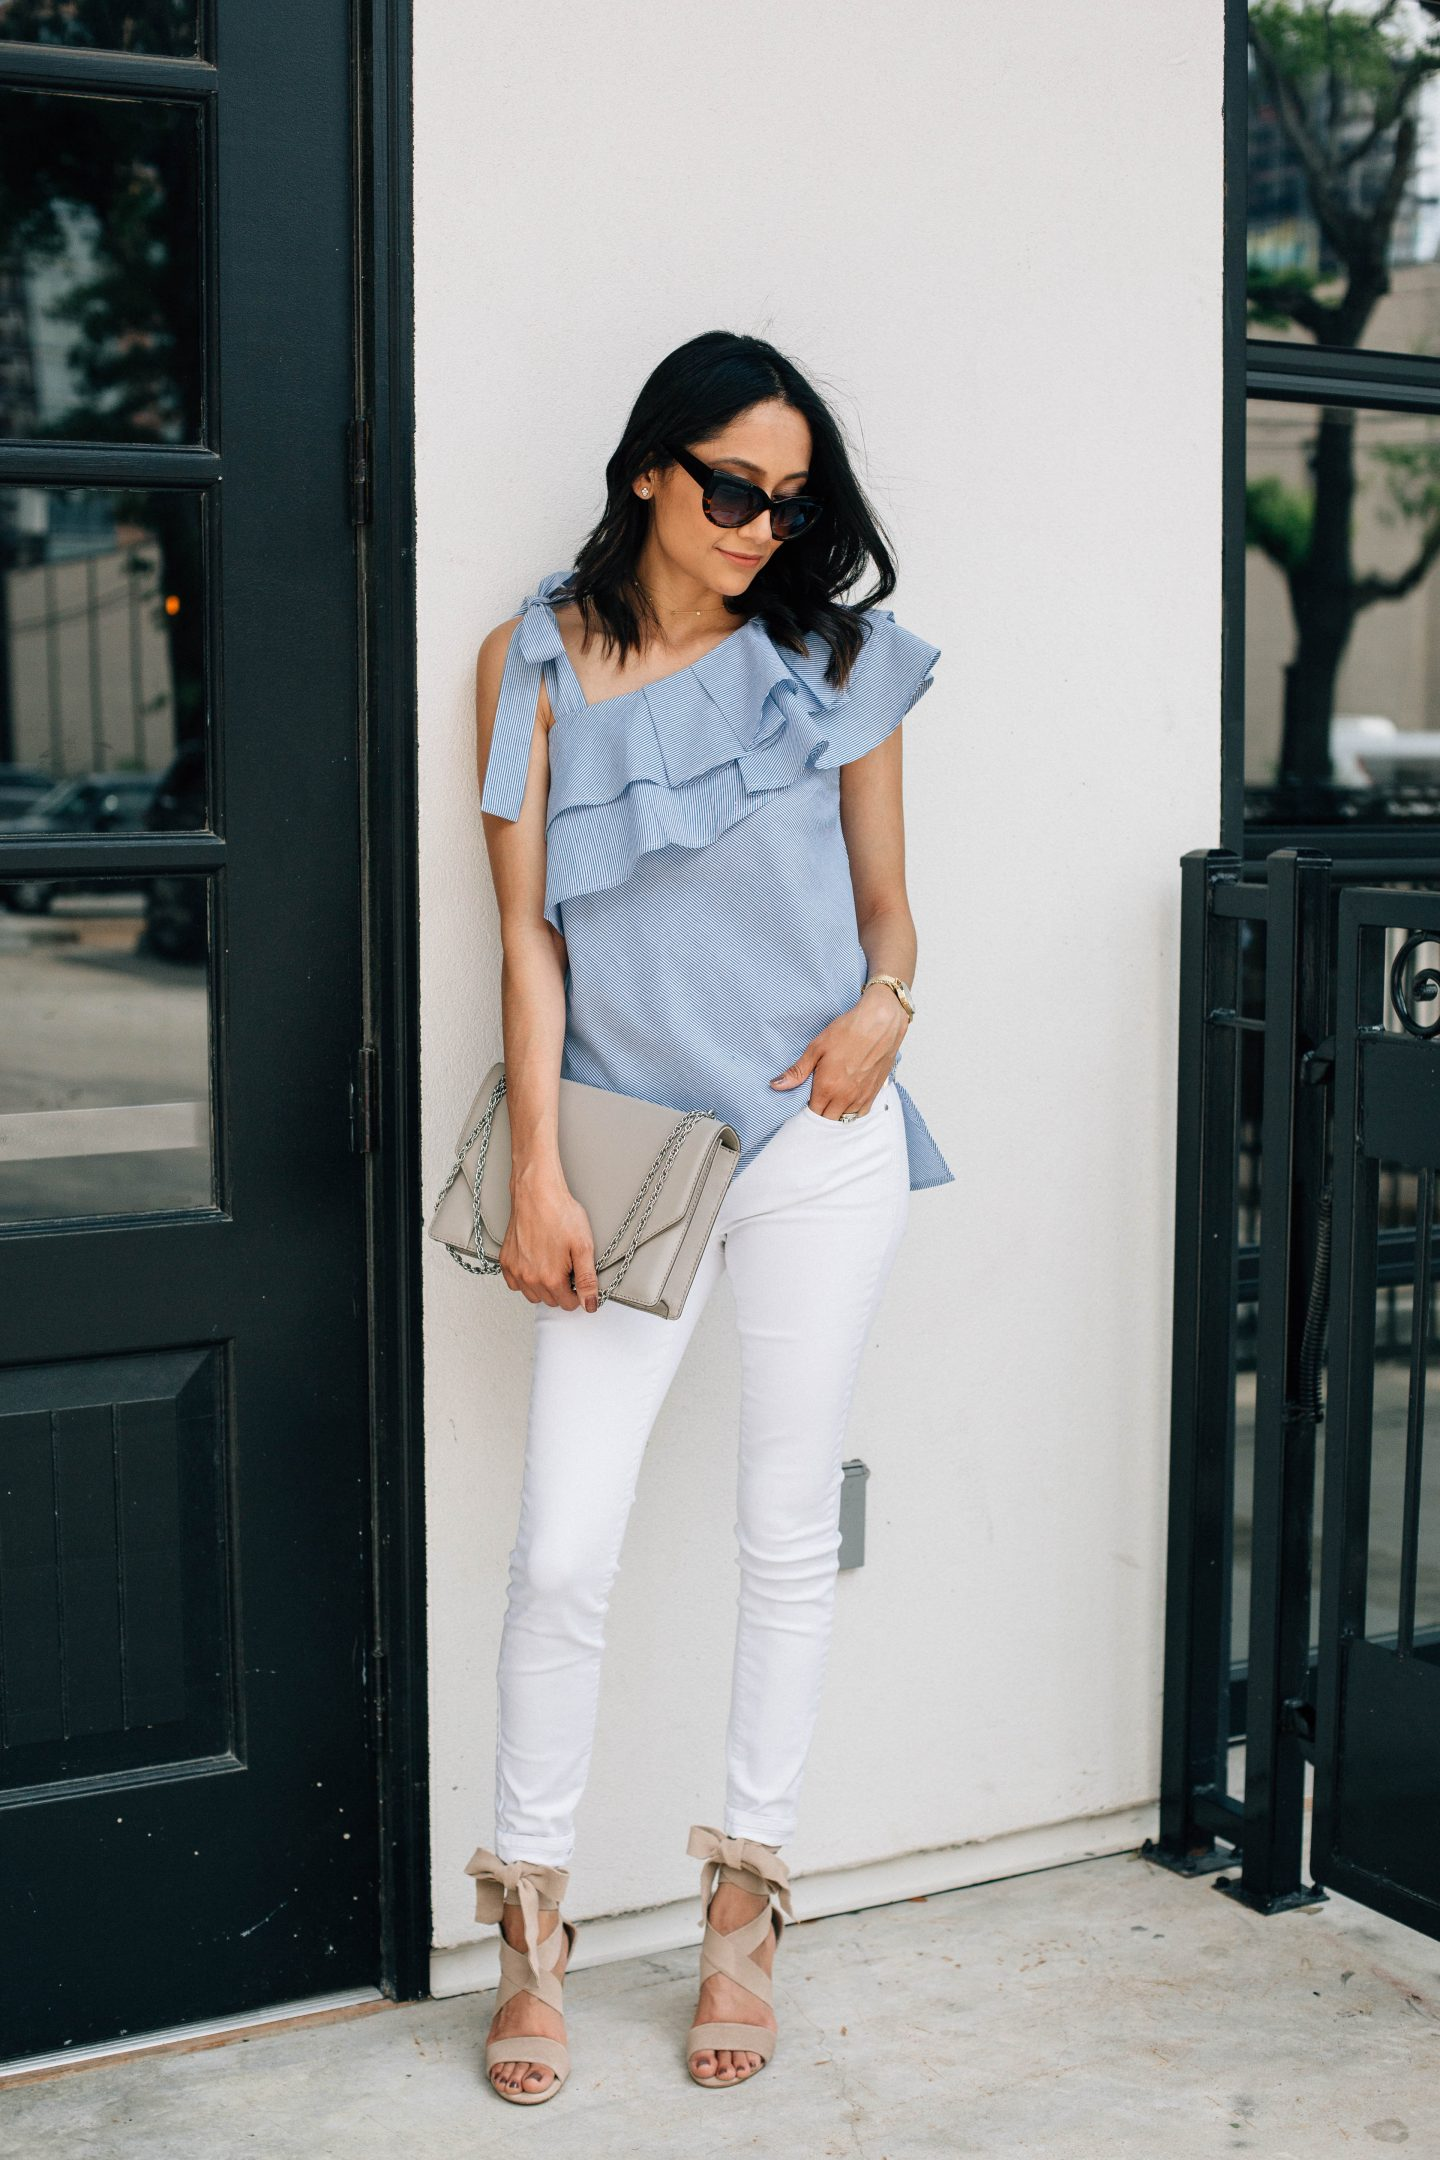 Summer Brunch Date Outfit With Dillard's